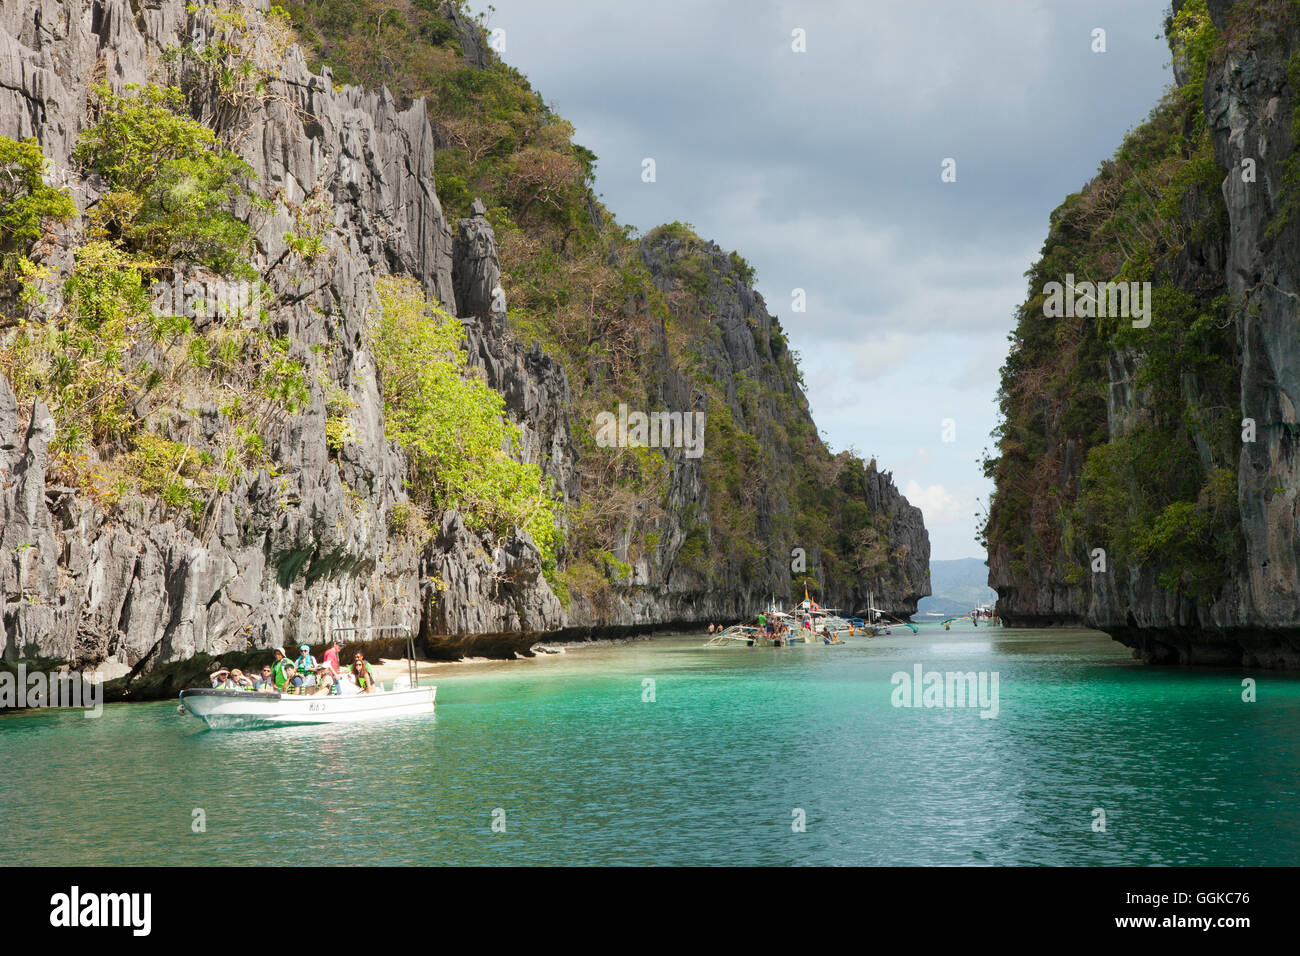 Tour boats in the archipelago Bacuit near El Nido, Palawan Island, South China Sea, Philippines, Asia - Stock Image